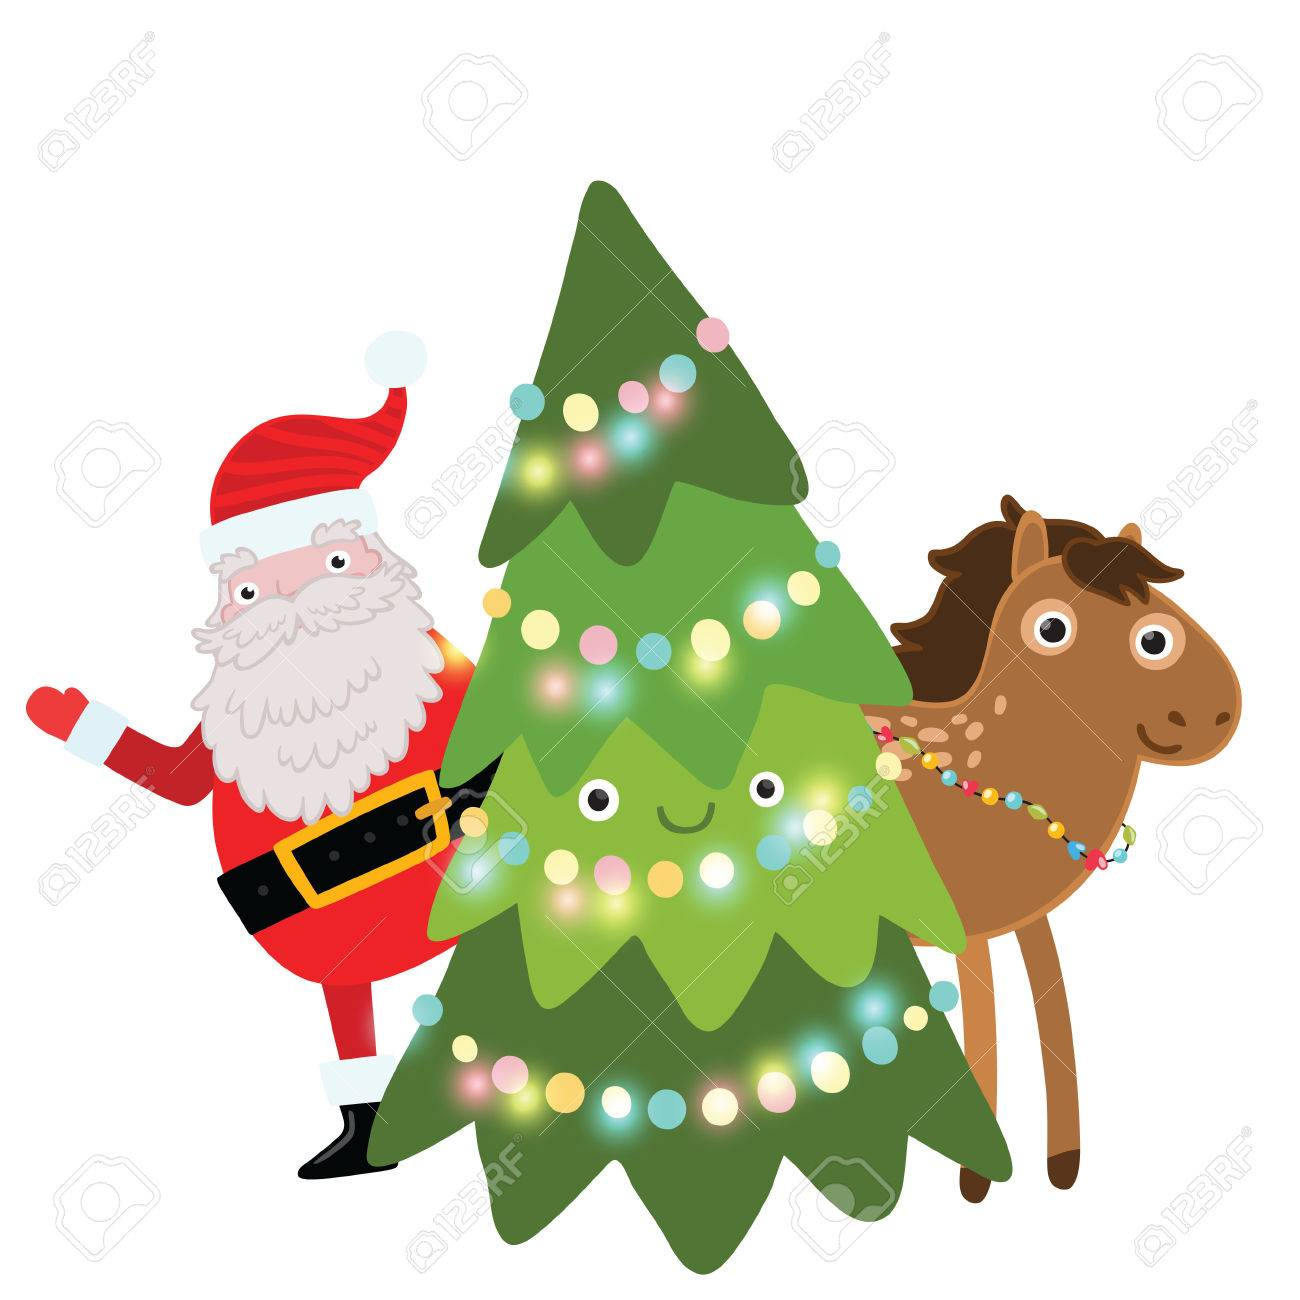 Christmas Horse Cartoon.Christmas Cute Cartoon Horse Holiday Vector Illustration